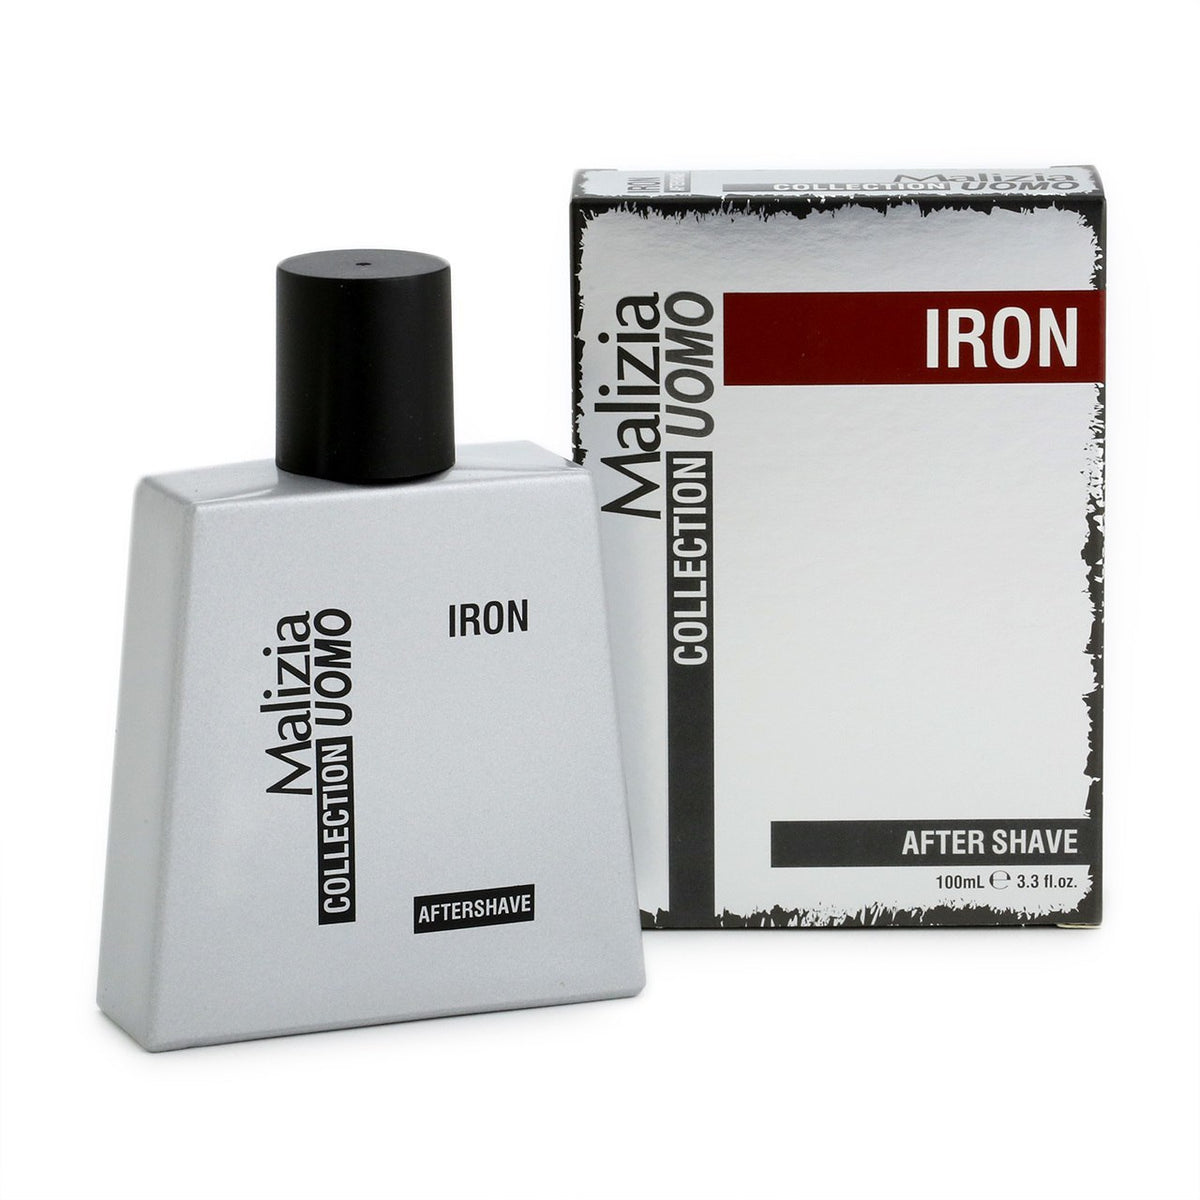 Malizia Uomo Collection After Shave - Iron